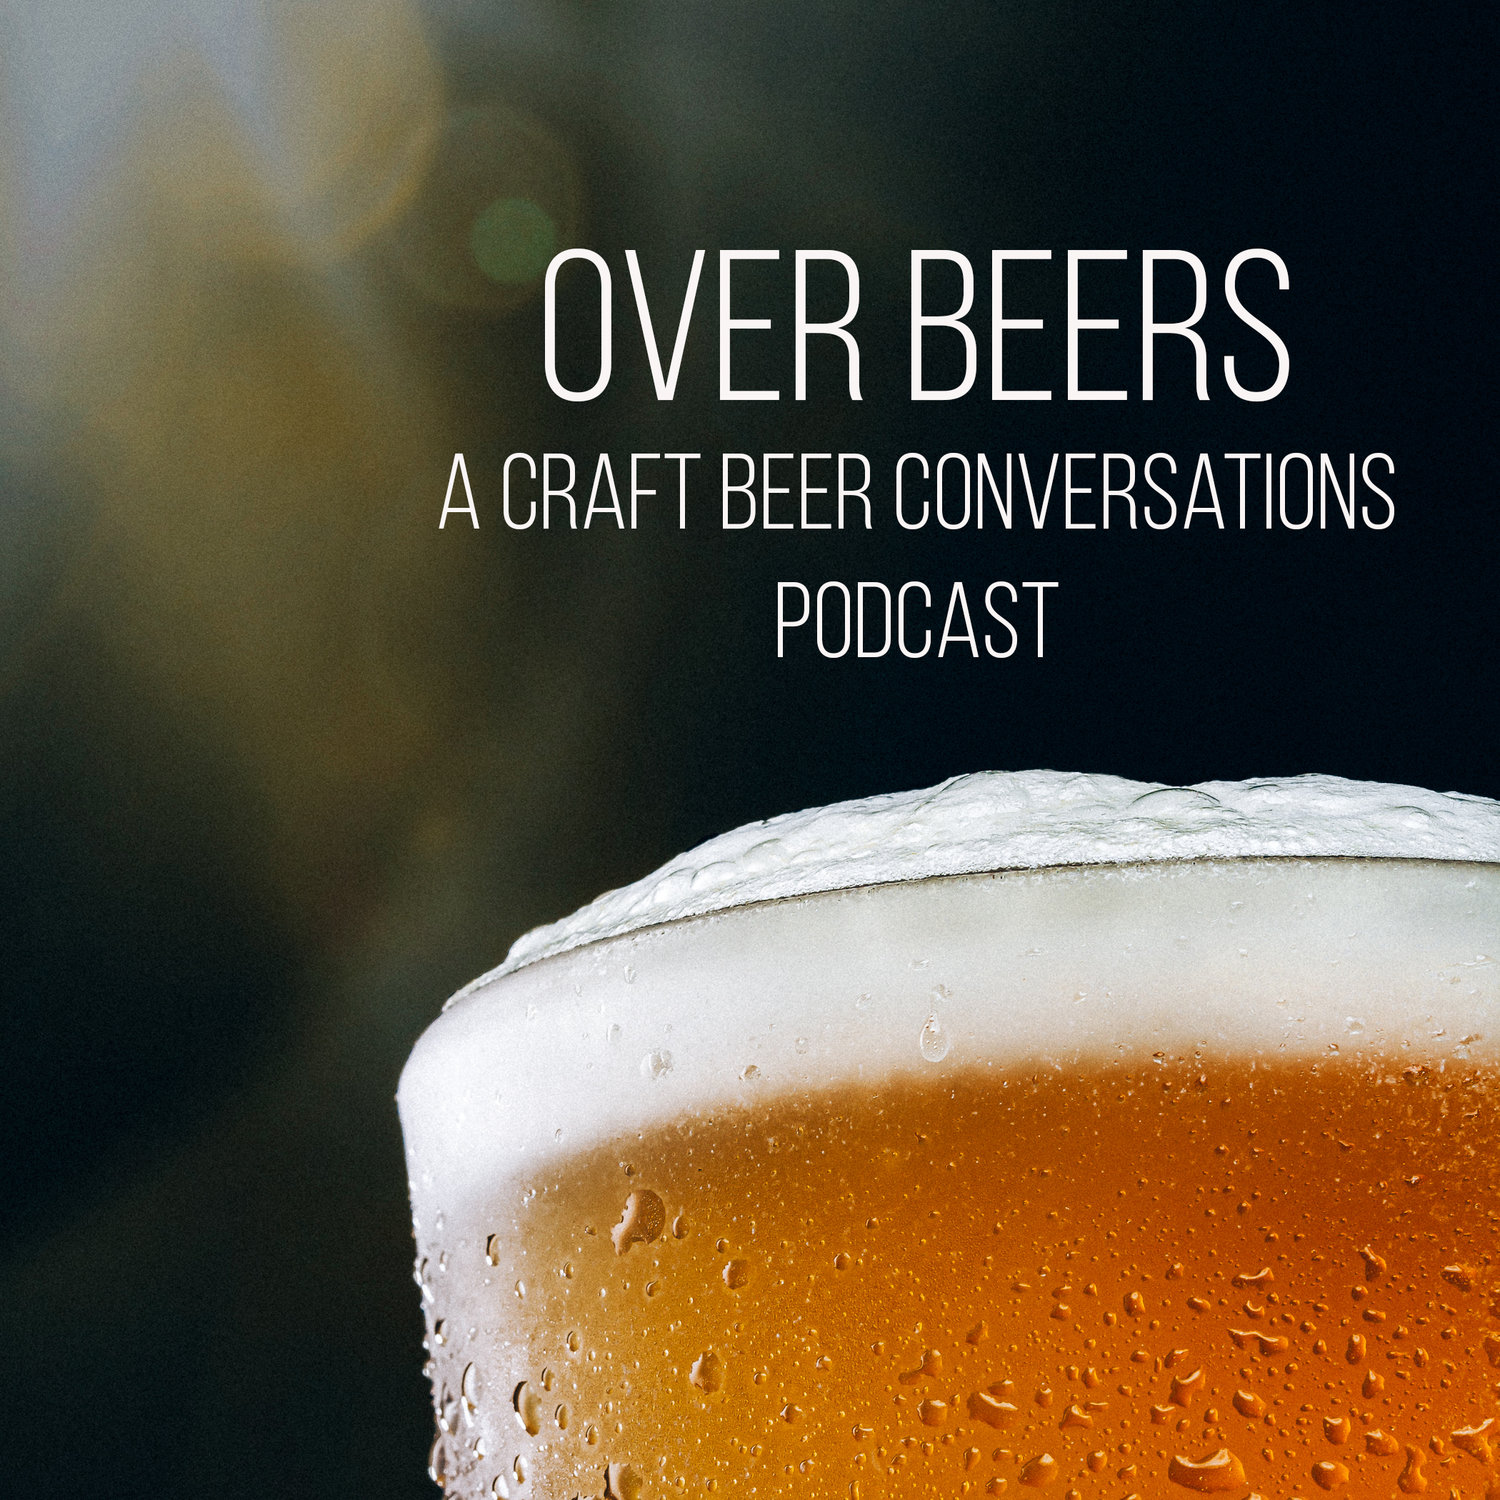 Over Beers - Flagship Brewing Company